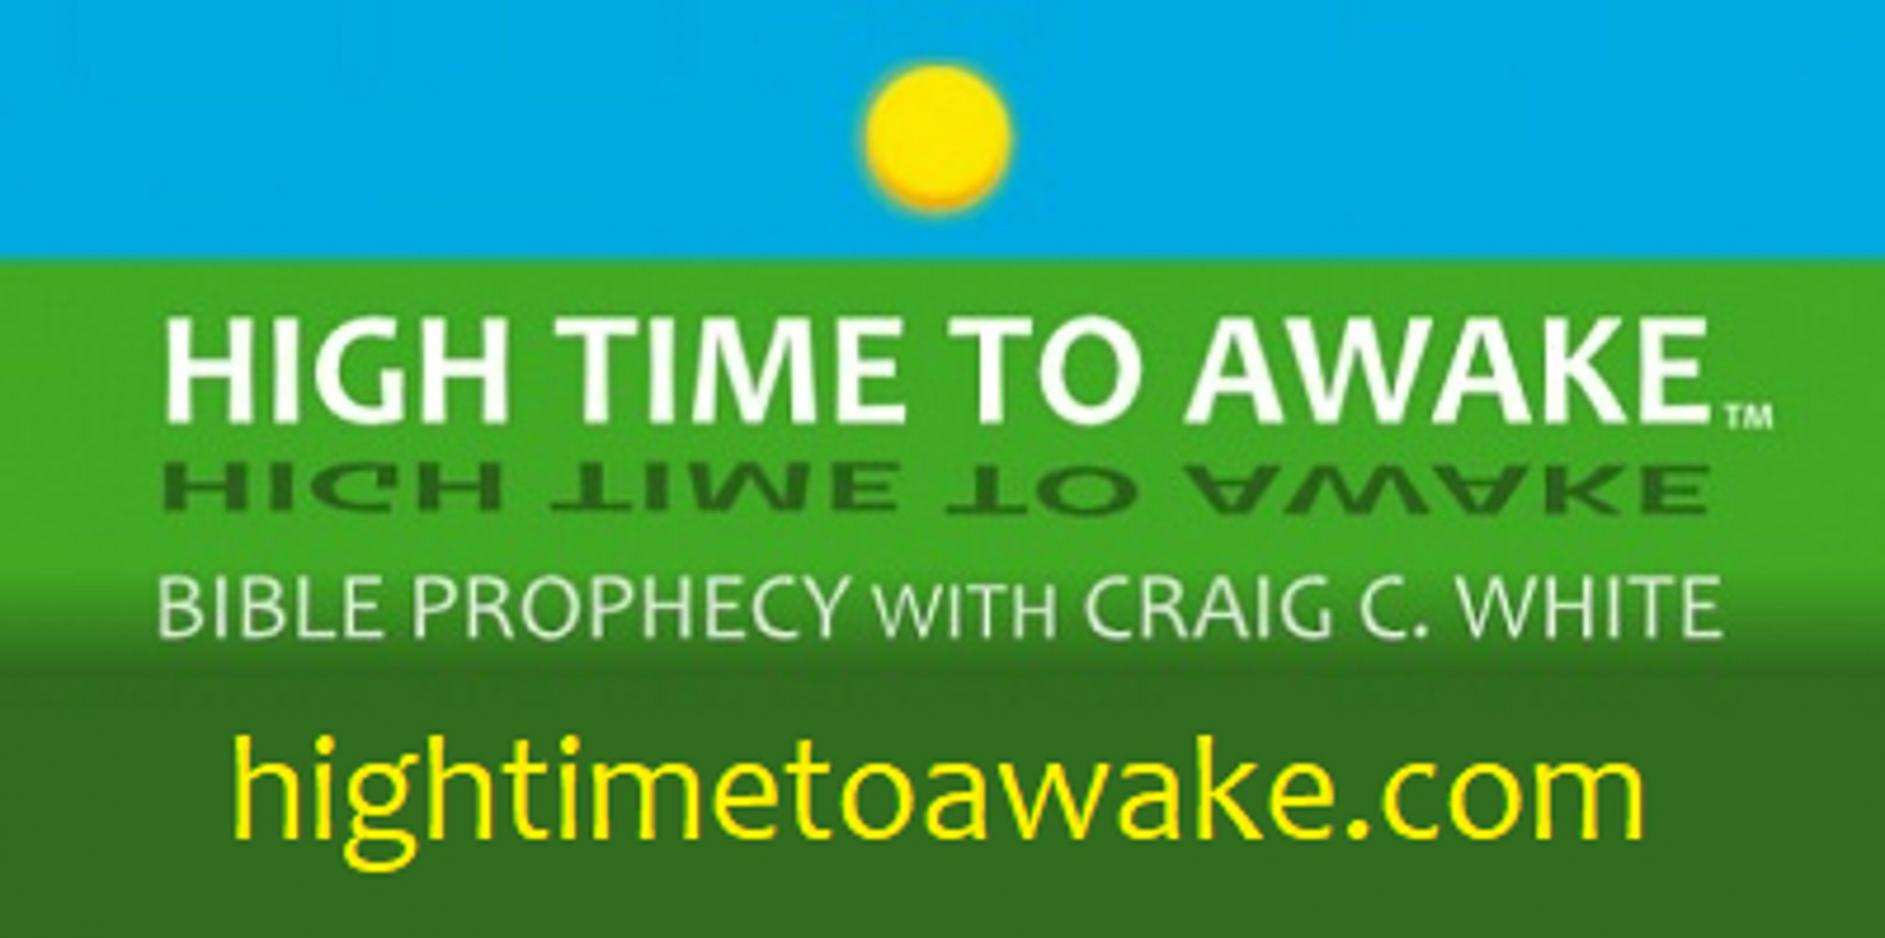 hightimetoawake Logo